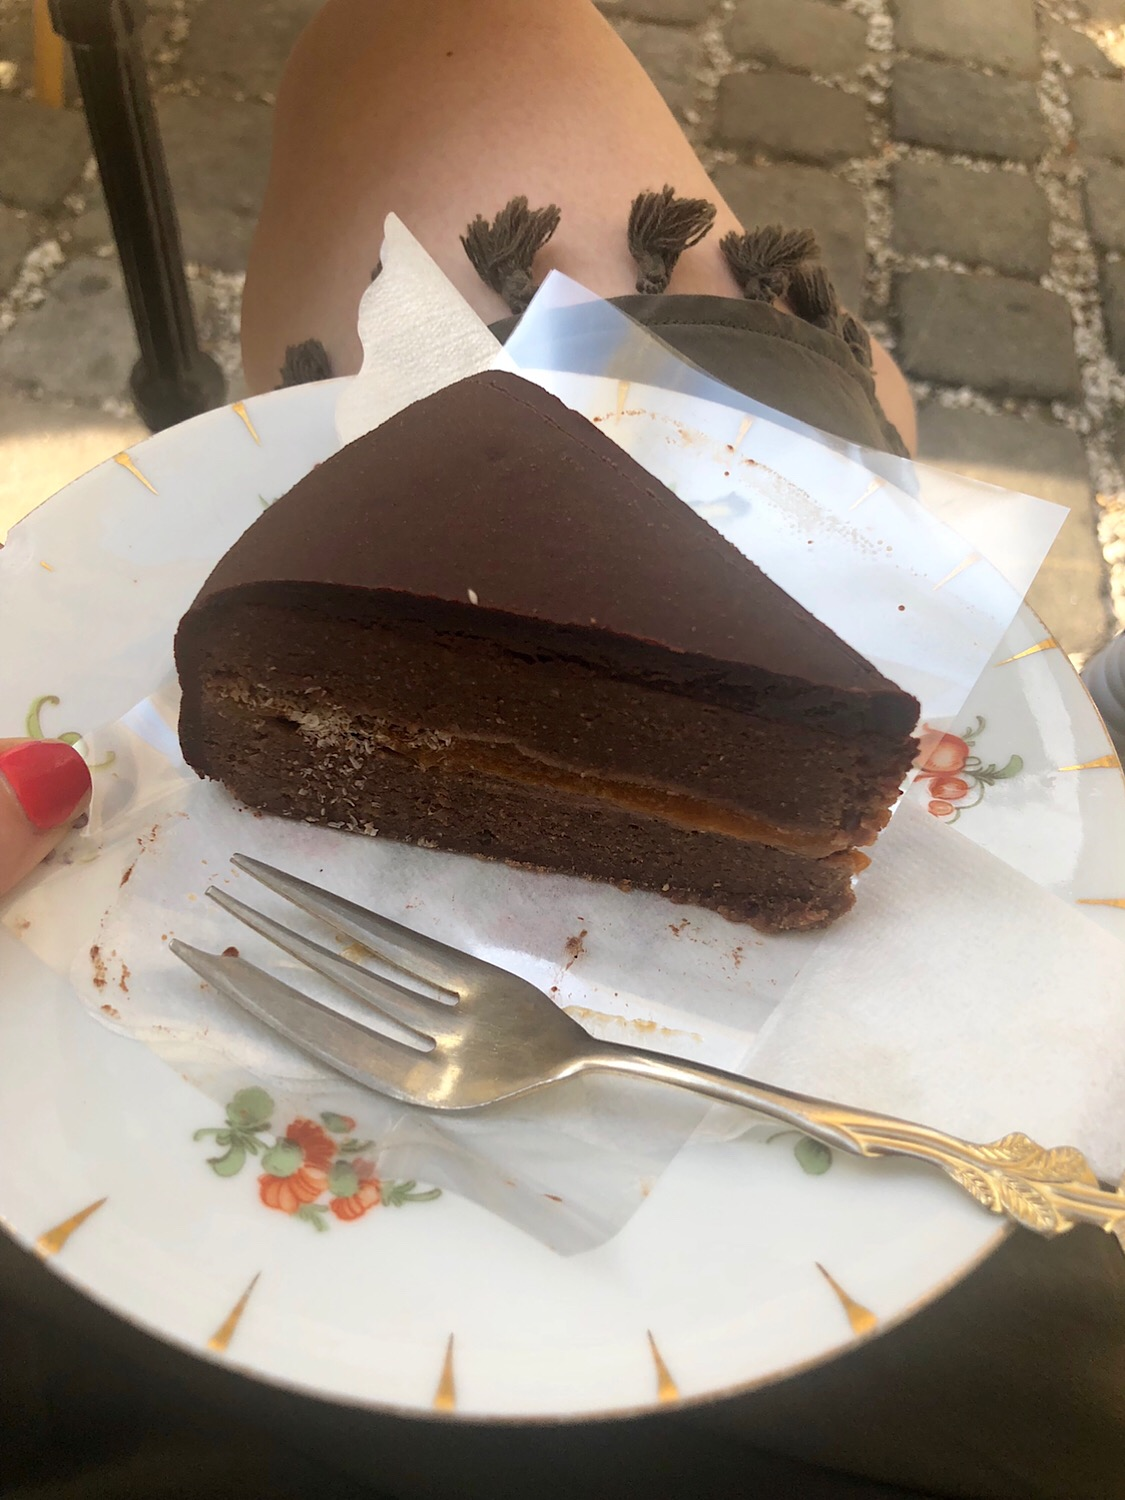 The raw version of a Sachertorte (the famous Austrian chocolate cake) at Simply Raw Bakery 🥰 🥰🥰10/10